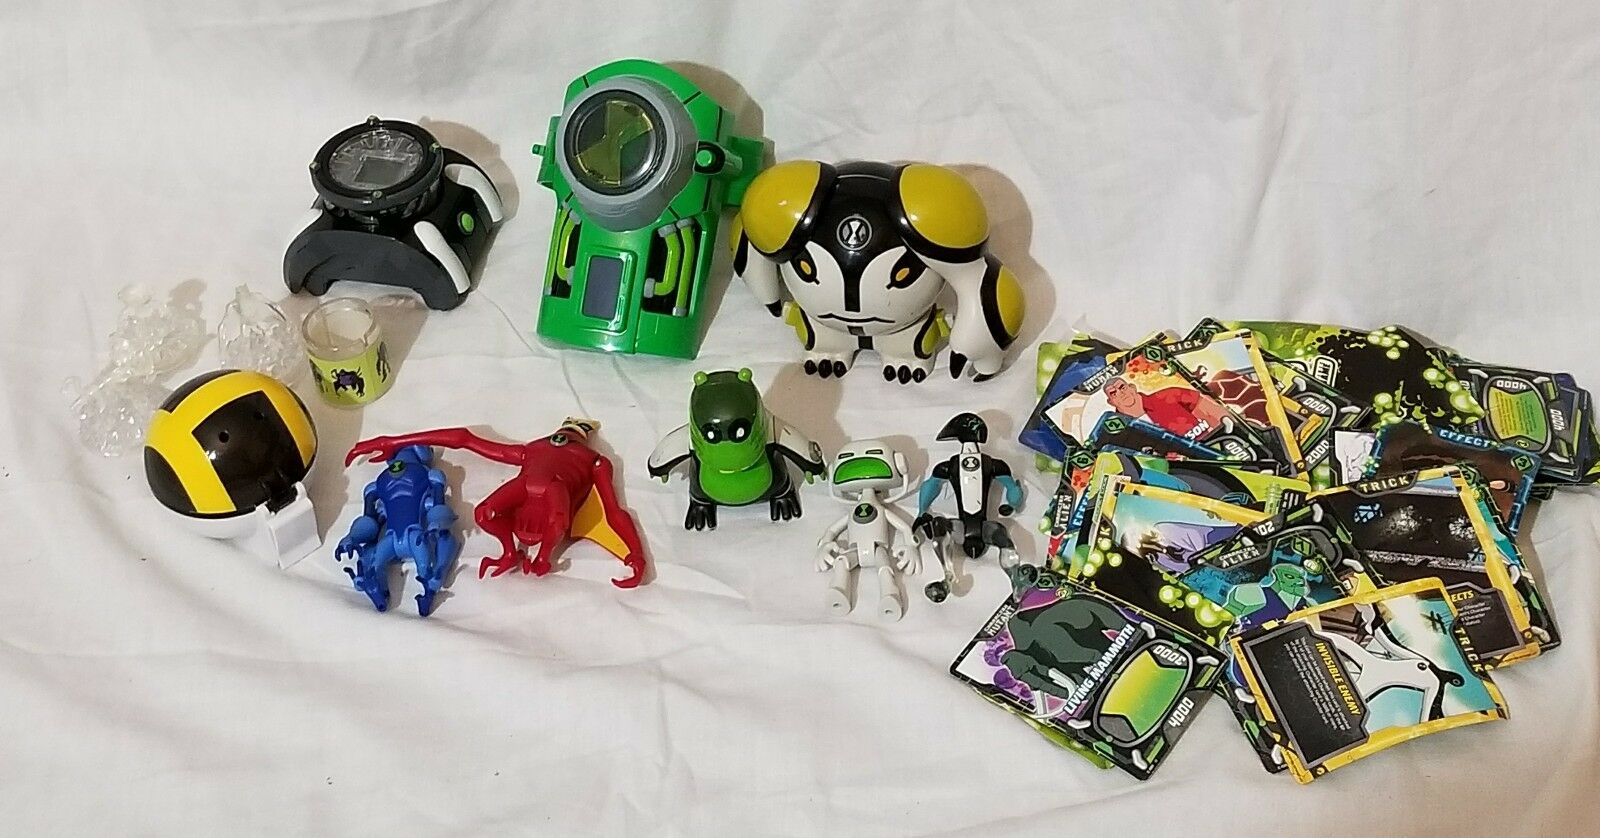 Ben 10 Lot with Ben 10 Figures and Ben 10 Watches Cards